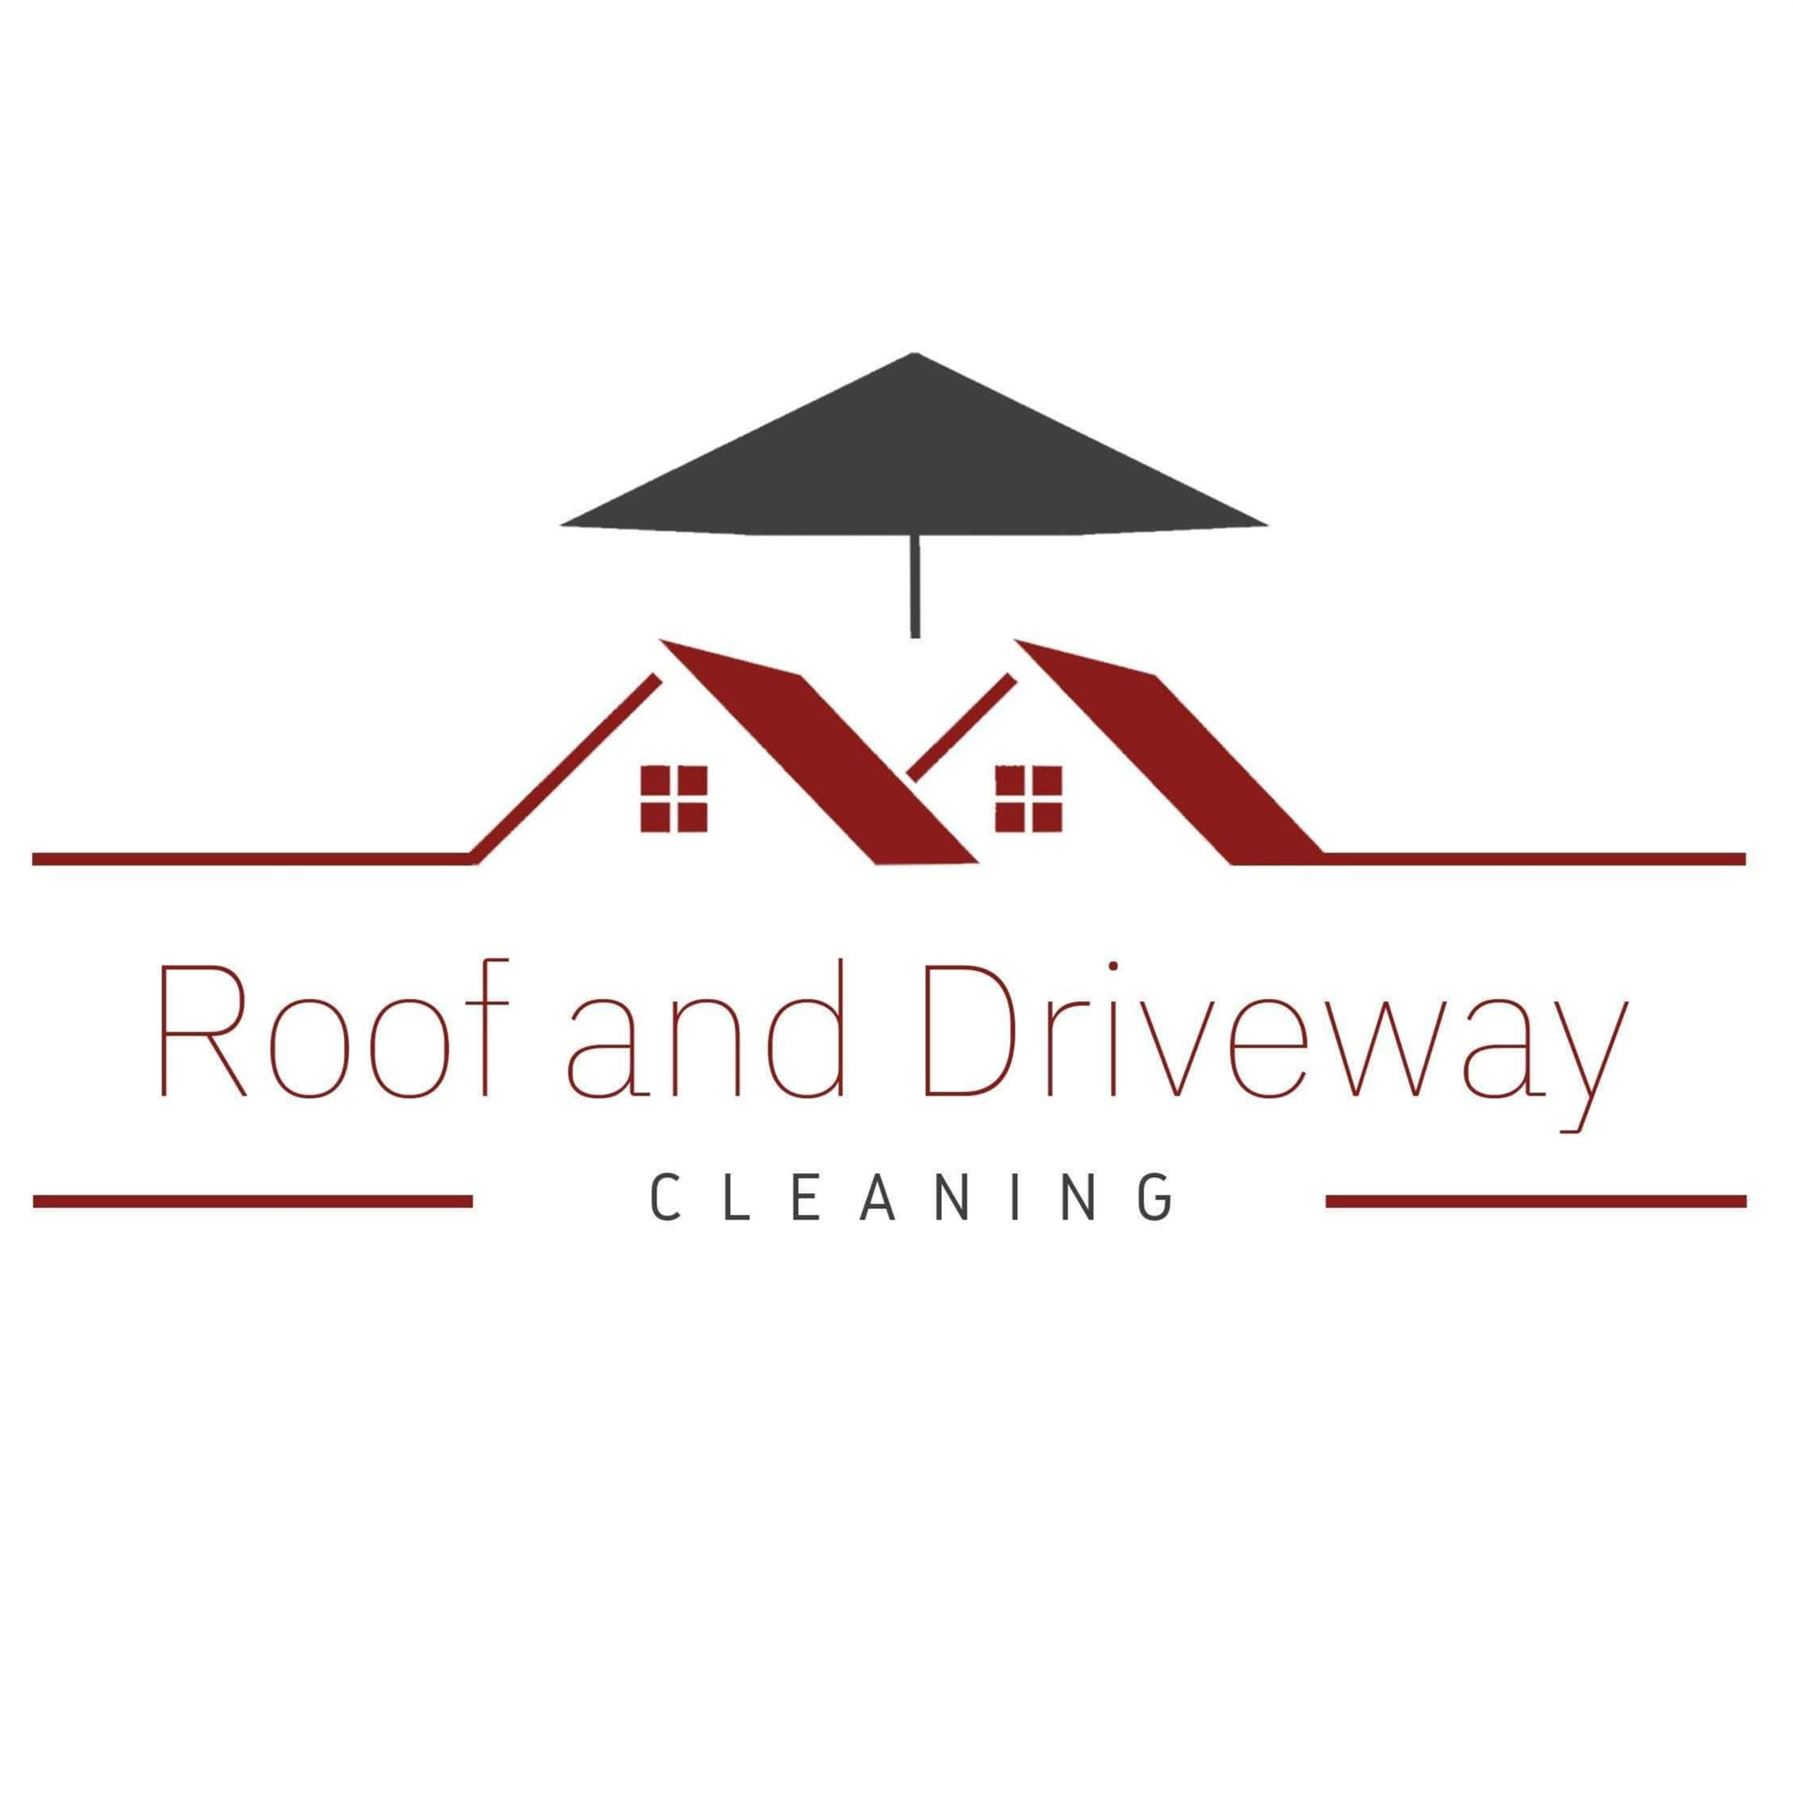 Roof & Driveway Cleaning London Presents Its New Website